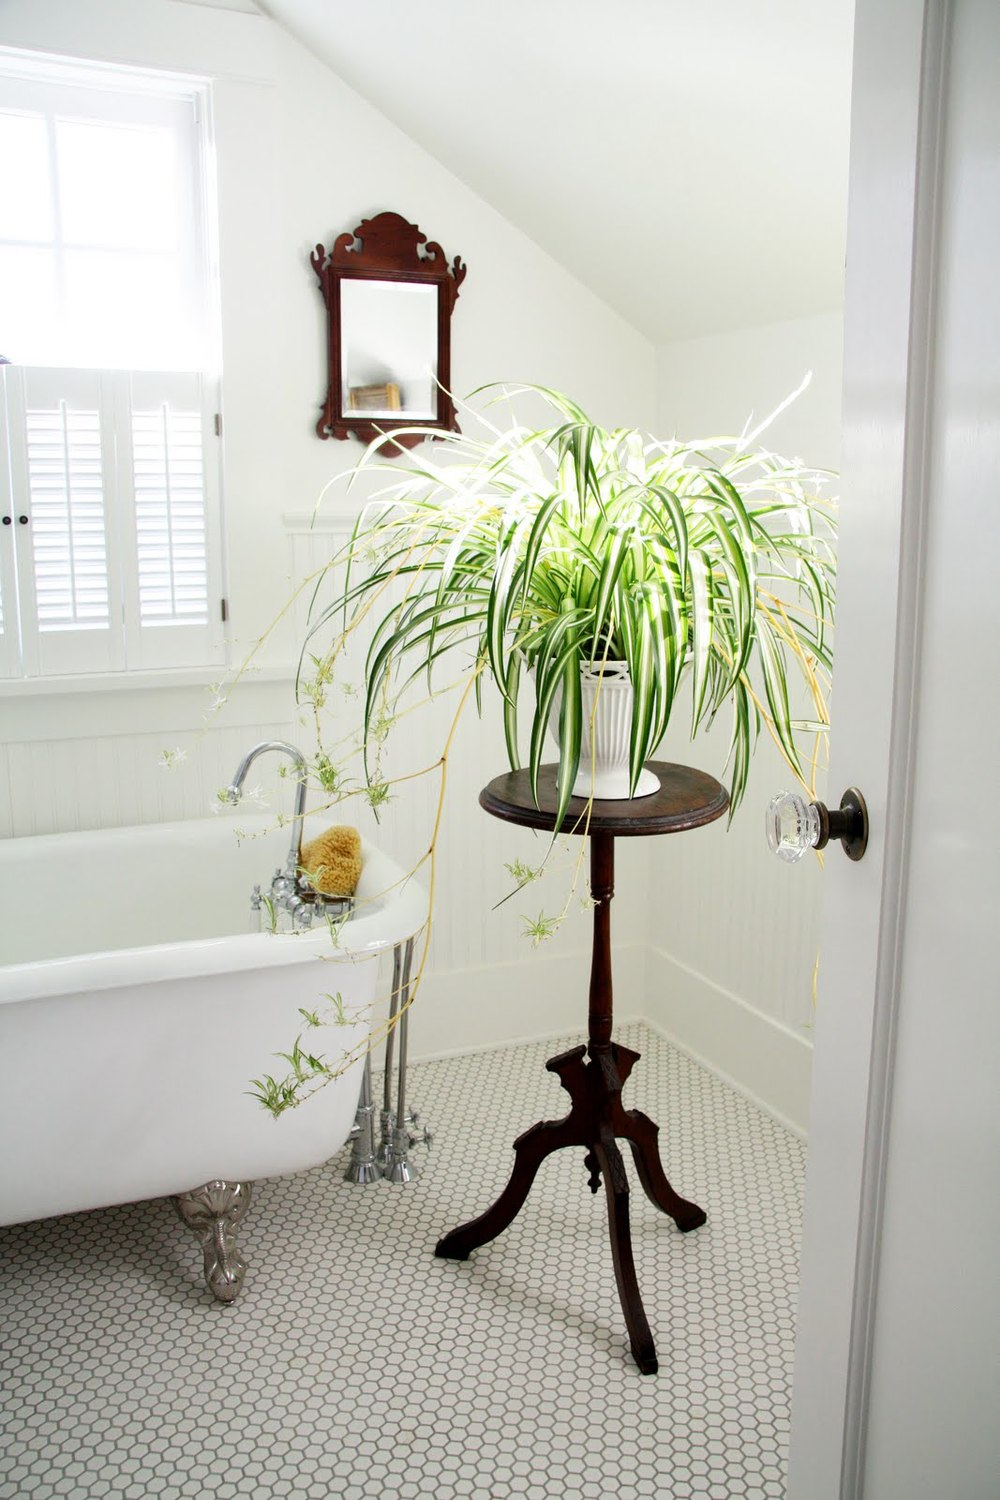 A blooming spider plant thrives in bathroom humidity. Image Source: Homedit.com